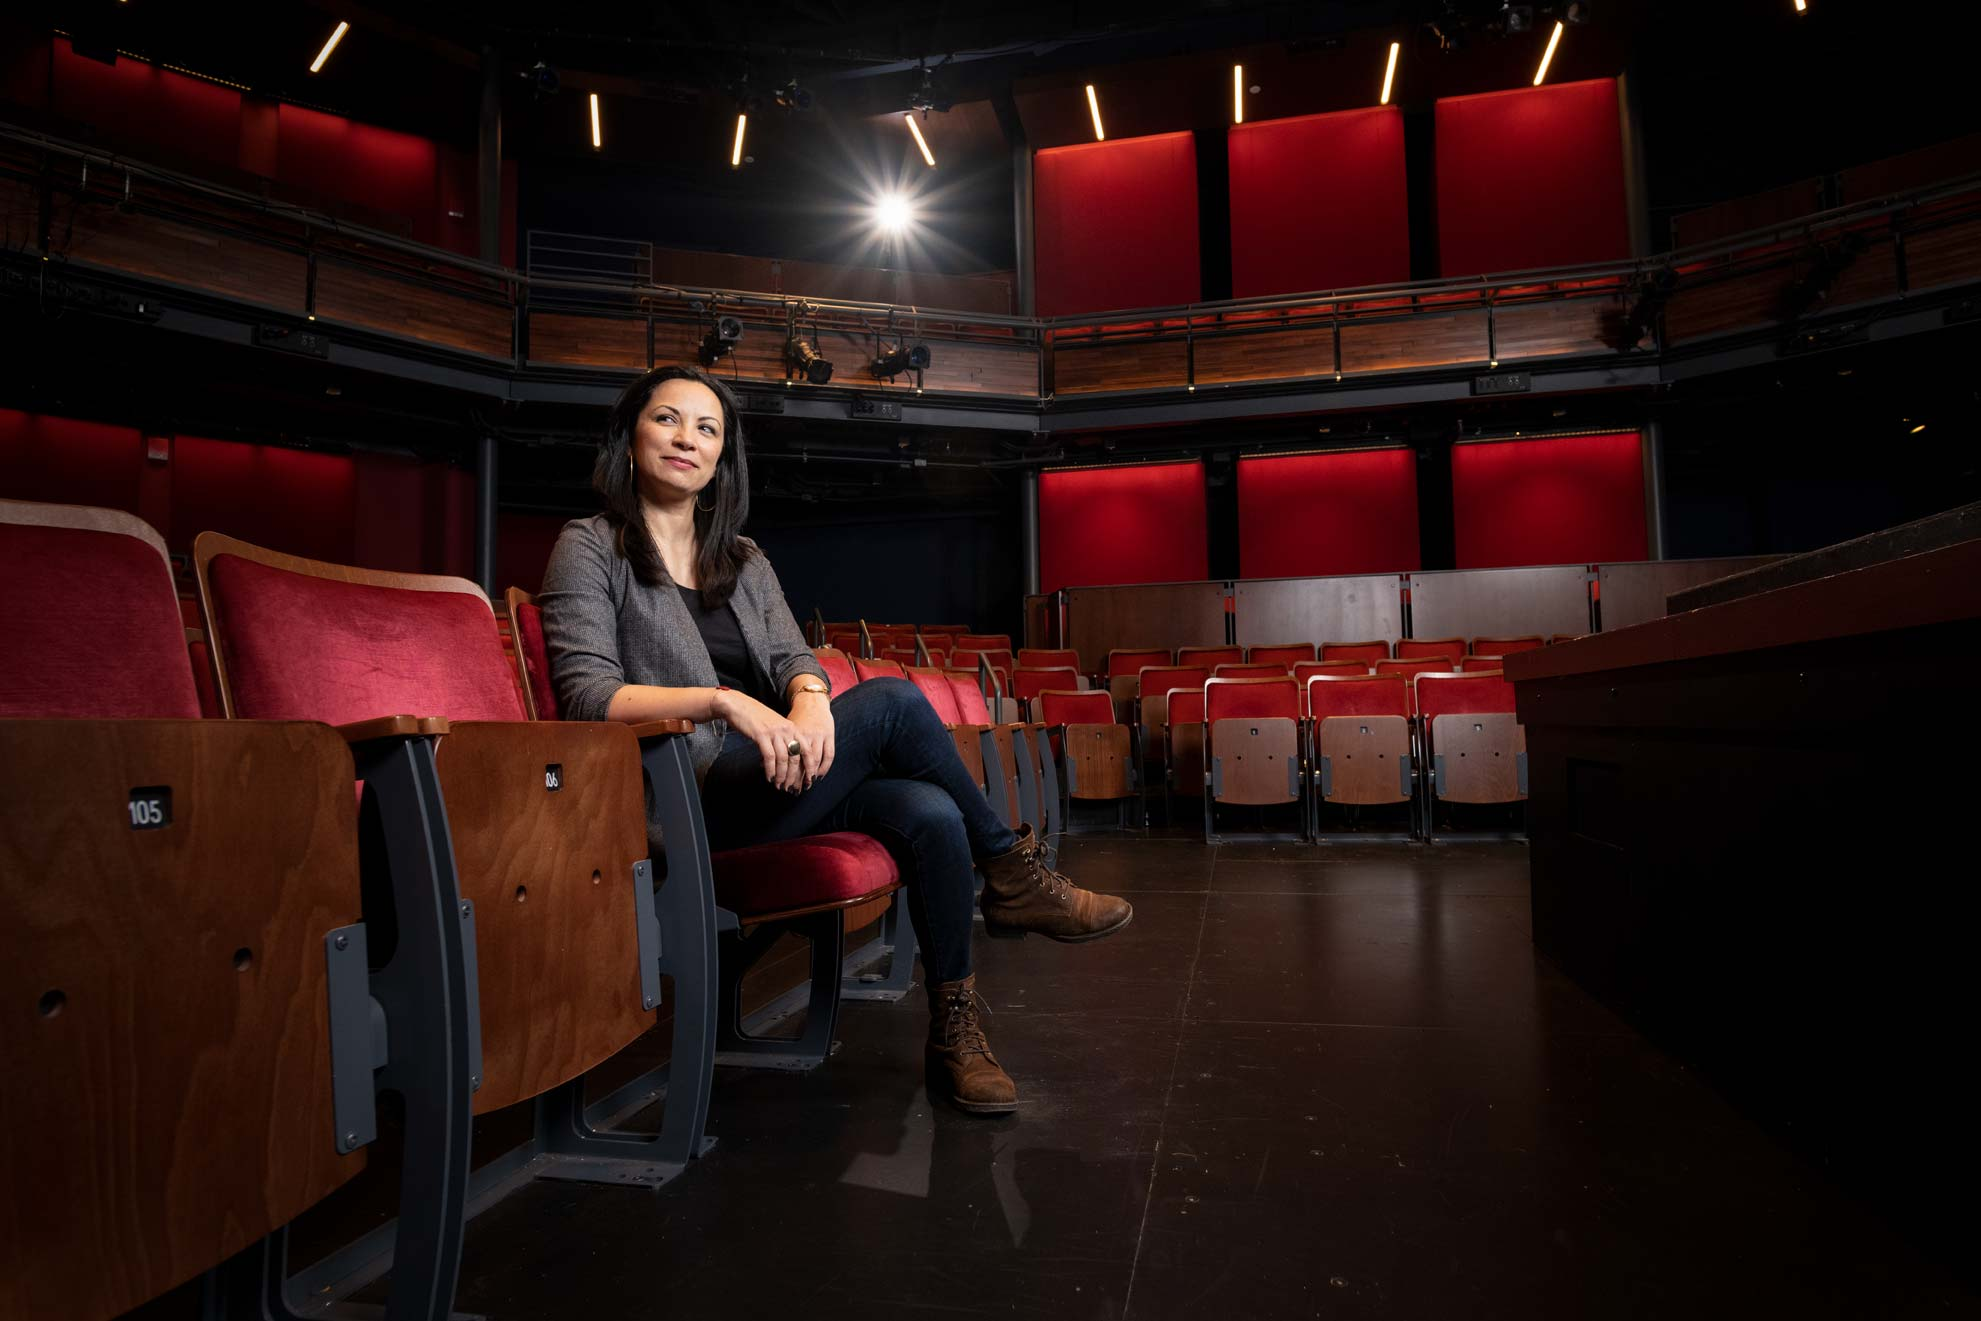 A woman seated in red velvet theater chairs